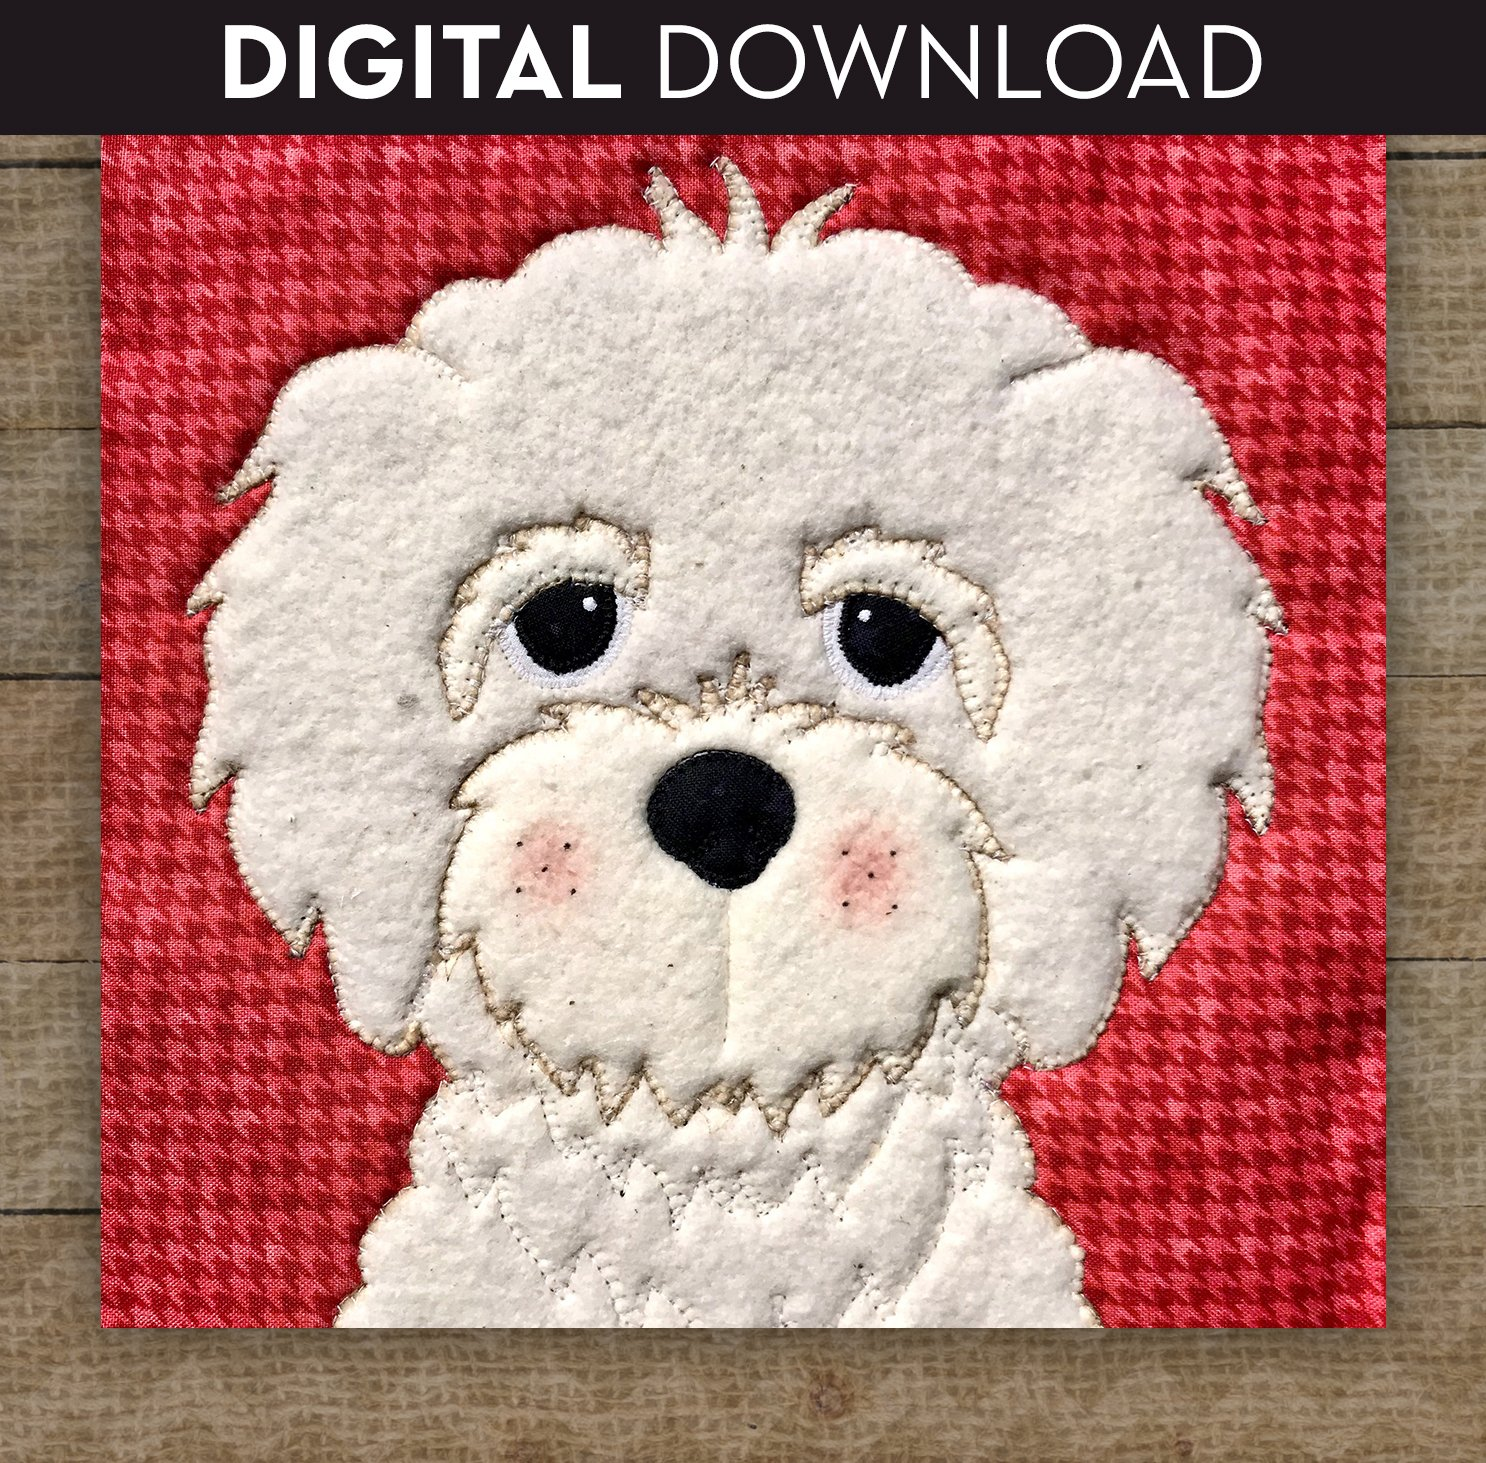 Bichon Frise - Download